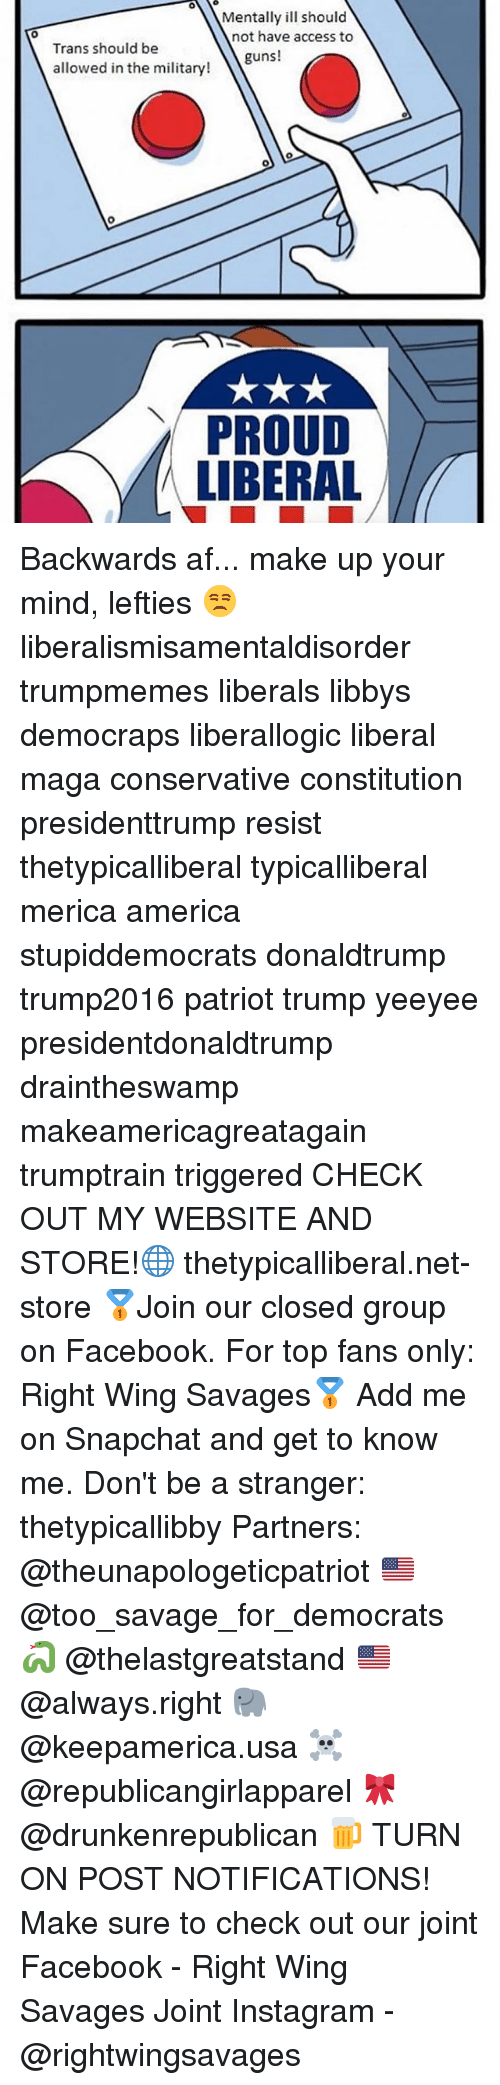 Proud Liberal: Mentally ill should  not have access to  0  Trans should be  allowed in the military!  guns!  PROUD  LIBERAL Backwards af... make up your mind, lefties 😒 liberalismisamentaldisorder trumpmemes liberals libbys democraps liberallogic liberal maga conservative constitution presidenttrump resist thetypicalliberal typicalliberal merica america stupiddemocrats donaldtrump trump2016 patriot trump yeeyee presidentdonaldtrump draintheswamp makeamericagreatagain trumptrain triggered CHECK OUT MY WEBSITE AND STORE!🌐 thetypicalliberal.net-store 🥇Join our closed group on Facebook. For top fans only: Right Wing Savages🥇 Add me on Snapchat and get to know me. Don't be a stranger: thetypicallibby Partners: @theunapologeticpatriot 🇺🇸 @too_savage_for_democrats 🐍 @thelastgreatstand 🇺🇸 @always.right 🐘 @keepamerica.usa ☠️ @republicangirlapparel 🎀 @drunkenrepublican 🍺 TURN ON POST NOTIFICATIONS! Make sure to check out our joint Facebook - Right Wing Savages Joint Instagram - @rightwingsavages